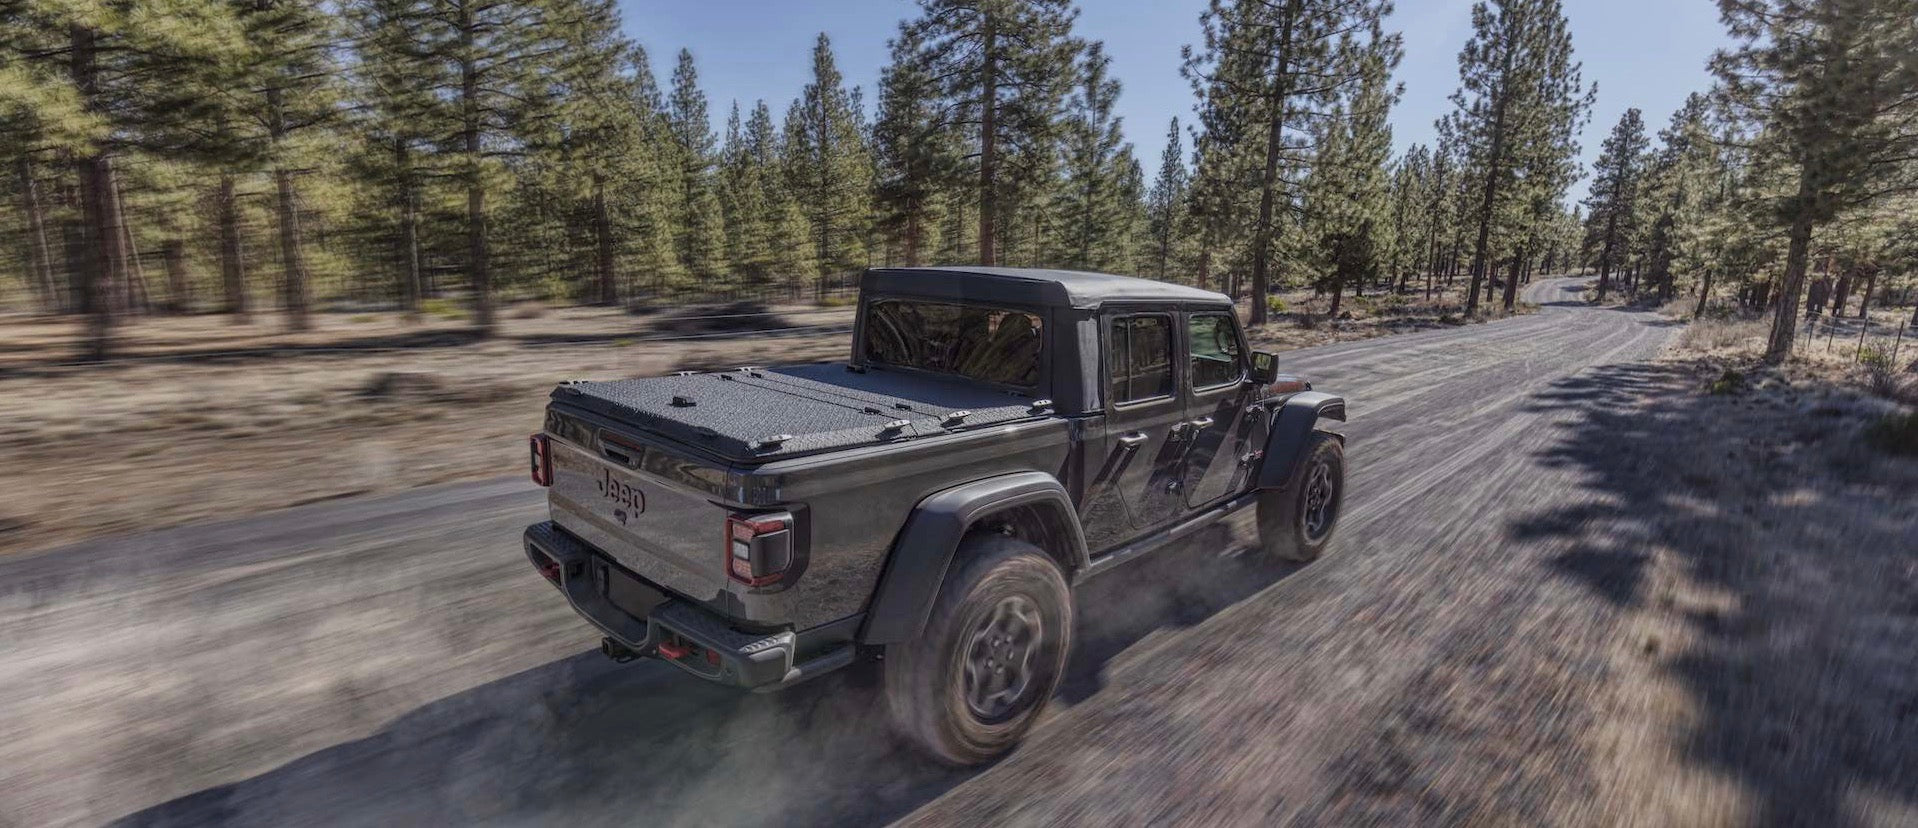 Jeep Gladiator with DiamondBack HD truck cover speeding down a gravel trail